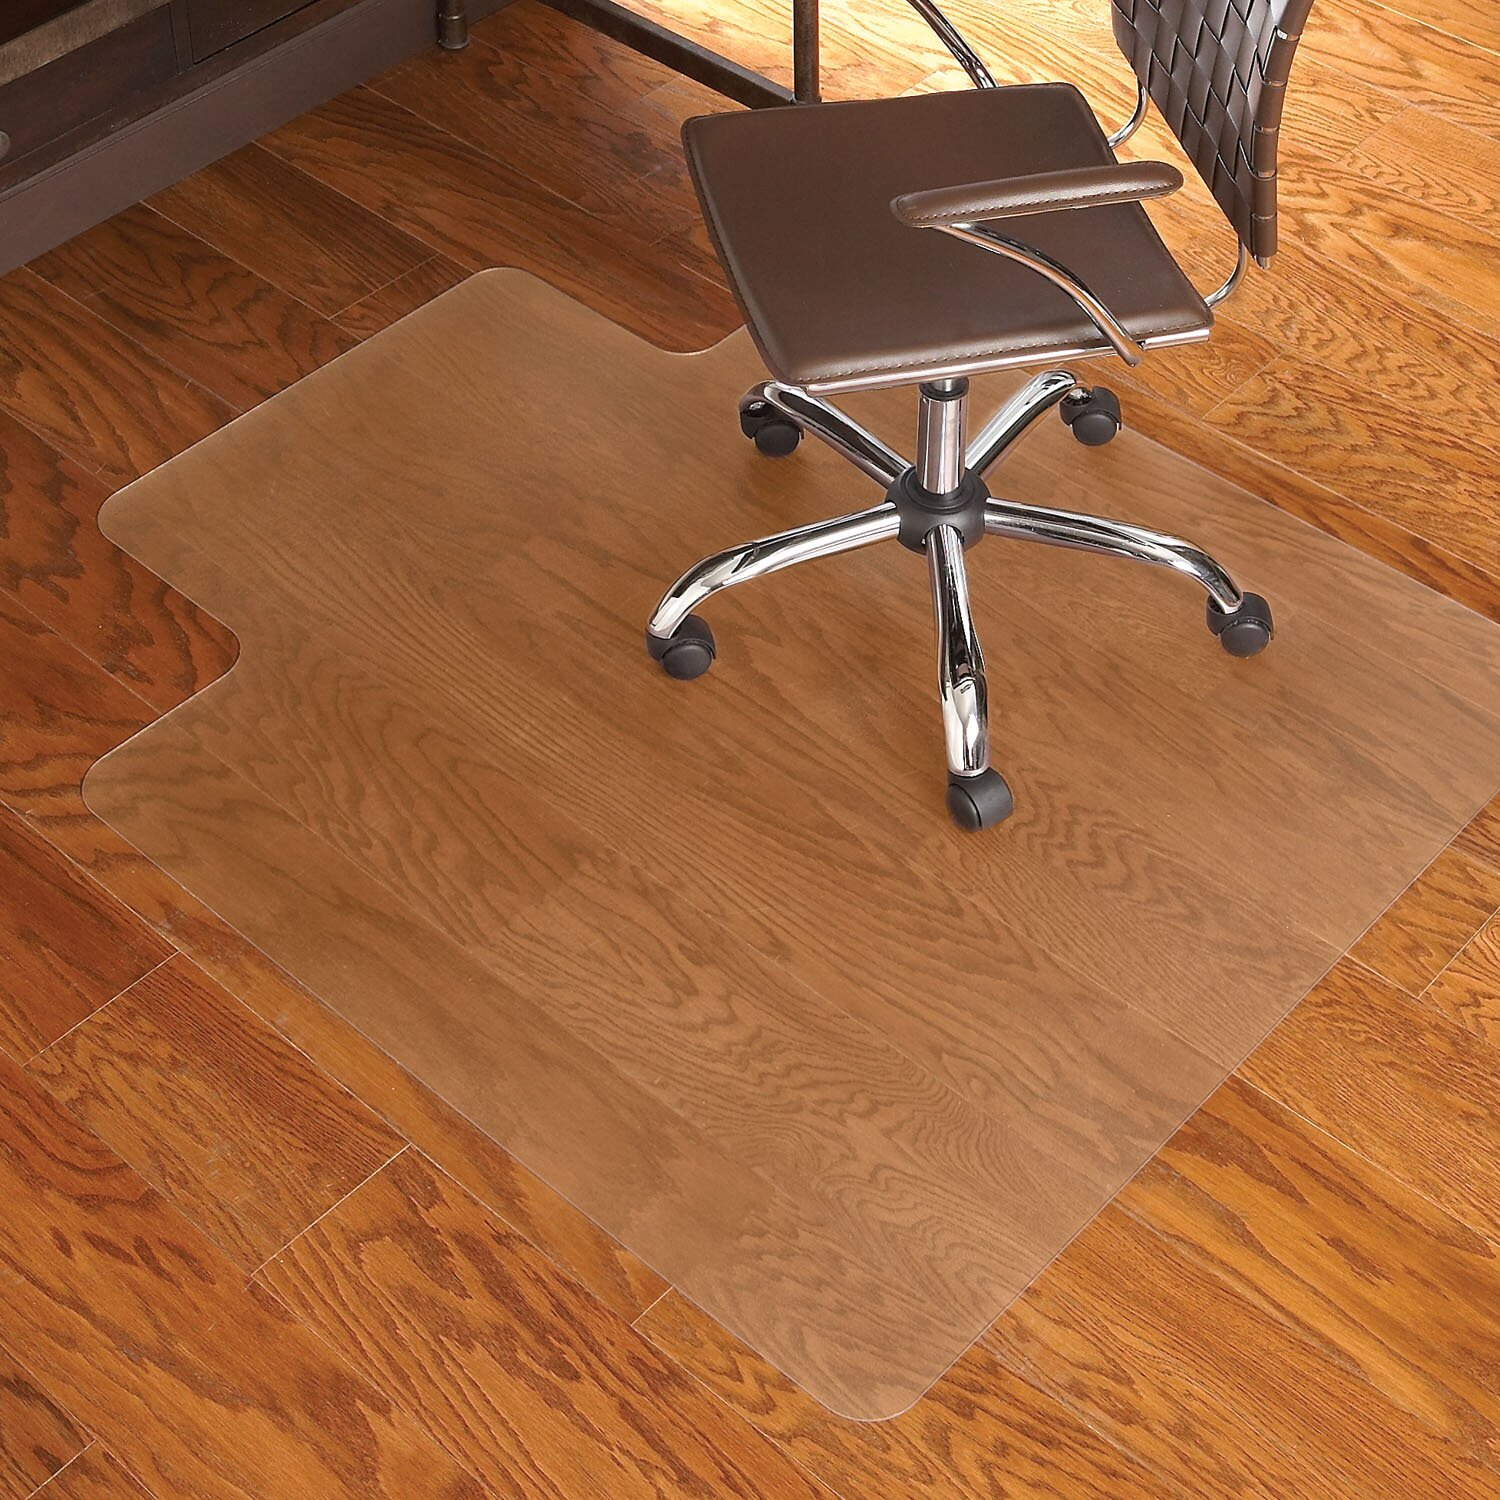 Es Robbins Everlife Hard Floor Office Chair Mat Amp Reviews